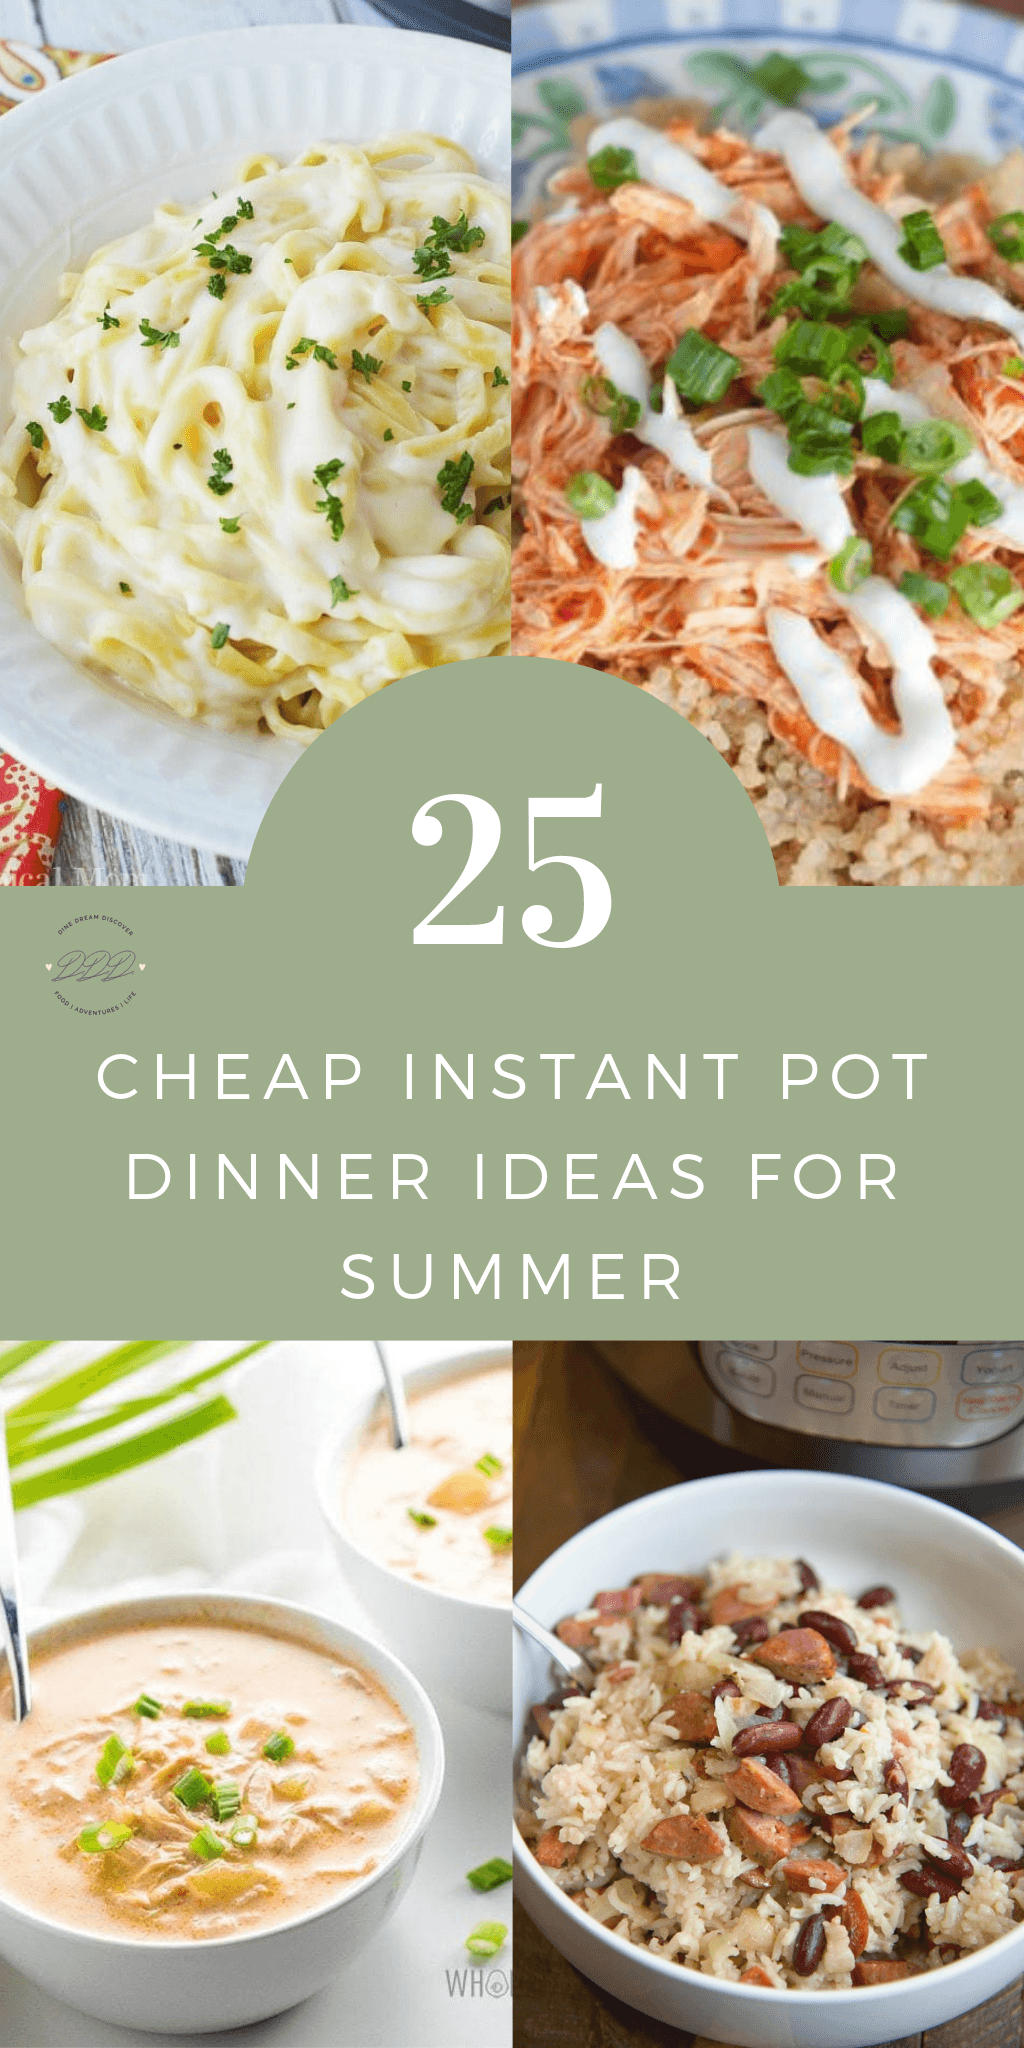 Summer isn't quite over yet and if your weather is anything like ours....it's hot! Here are 25 cheap Instant Pot dinner ideas that are perfect for this time of year.